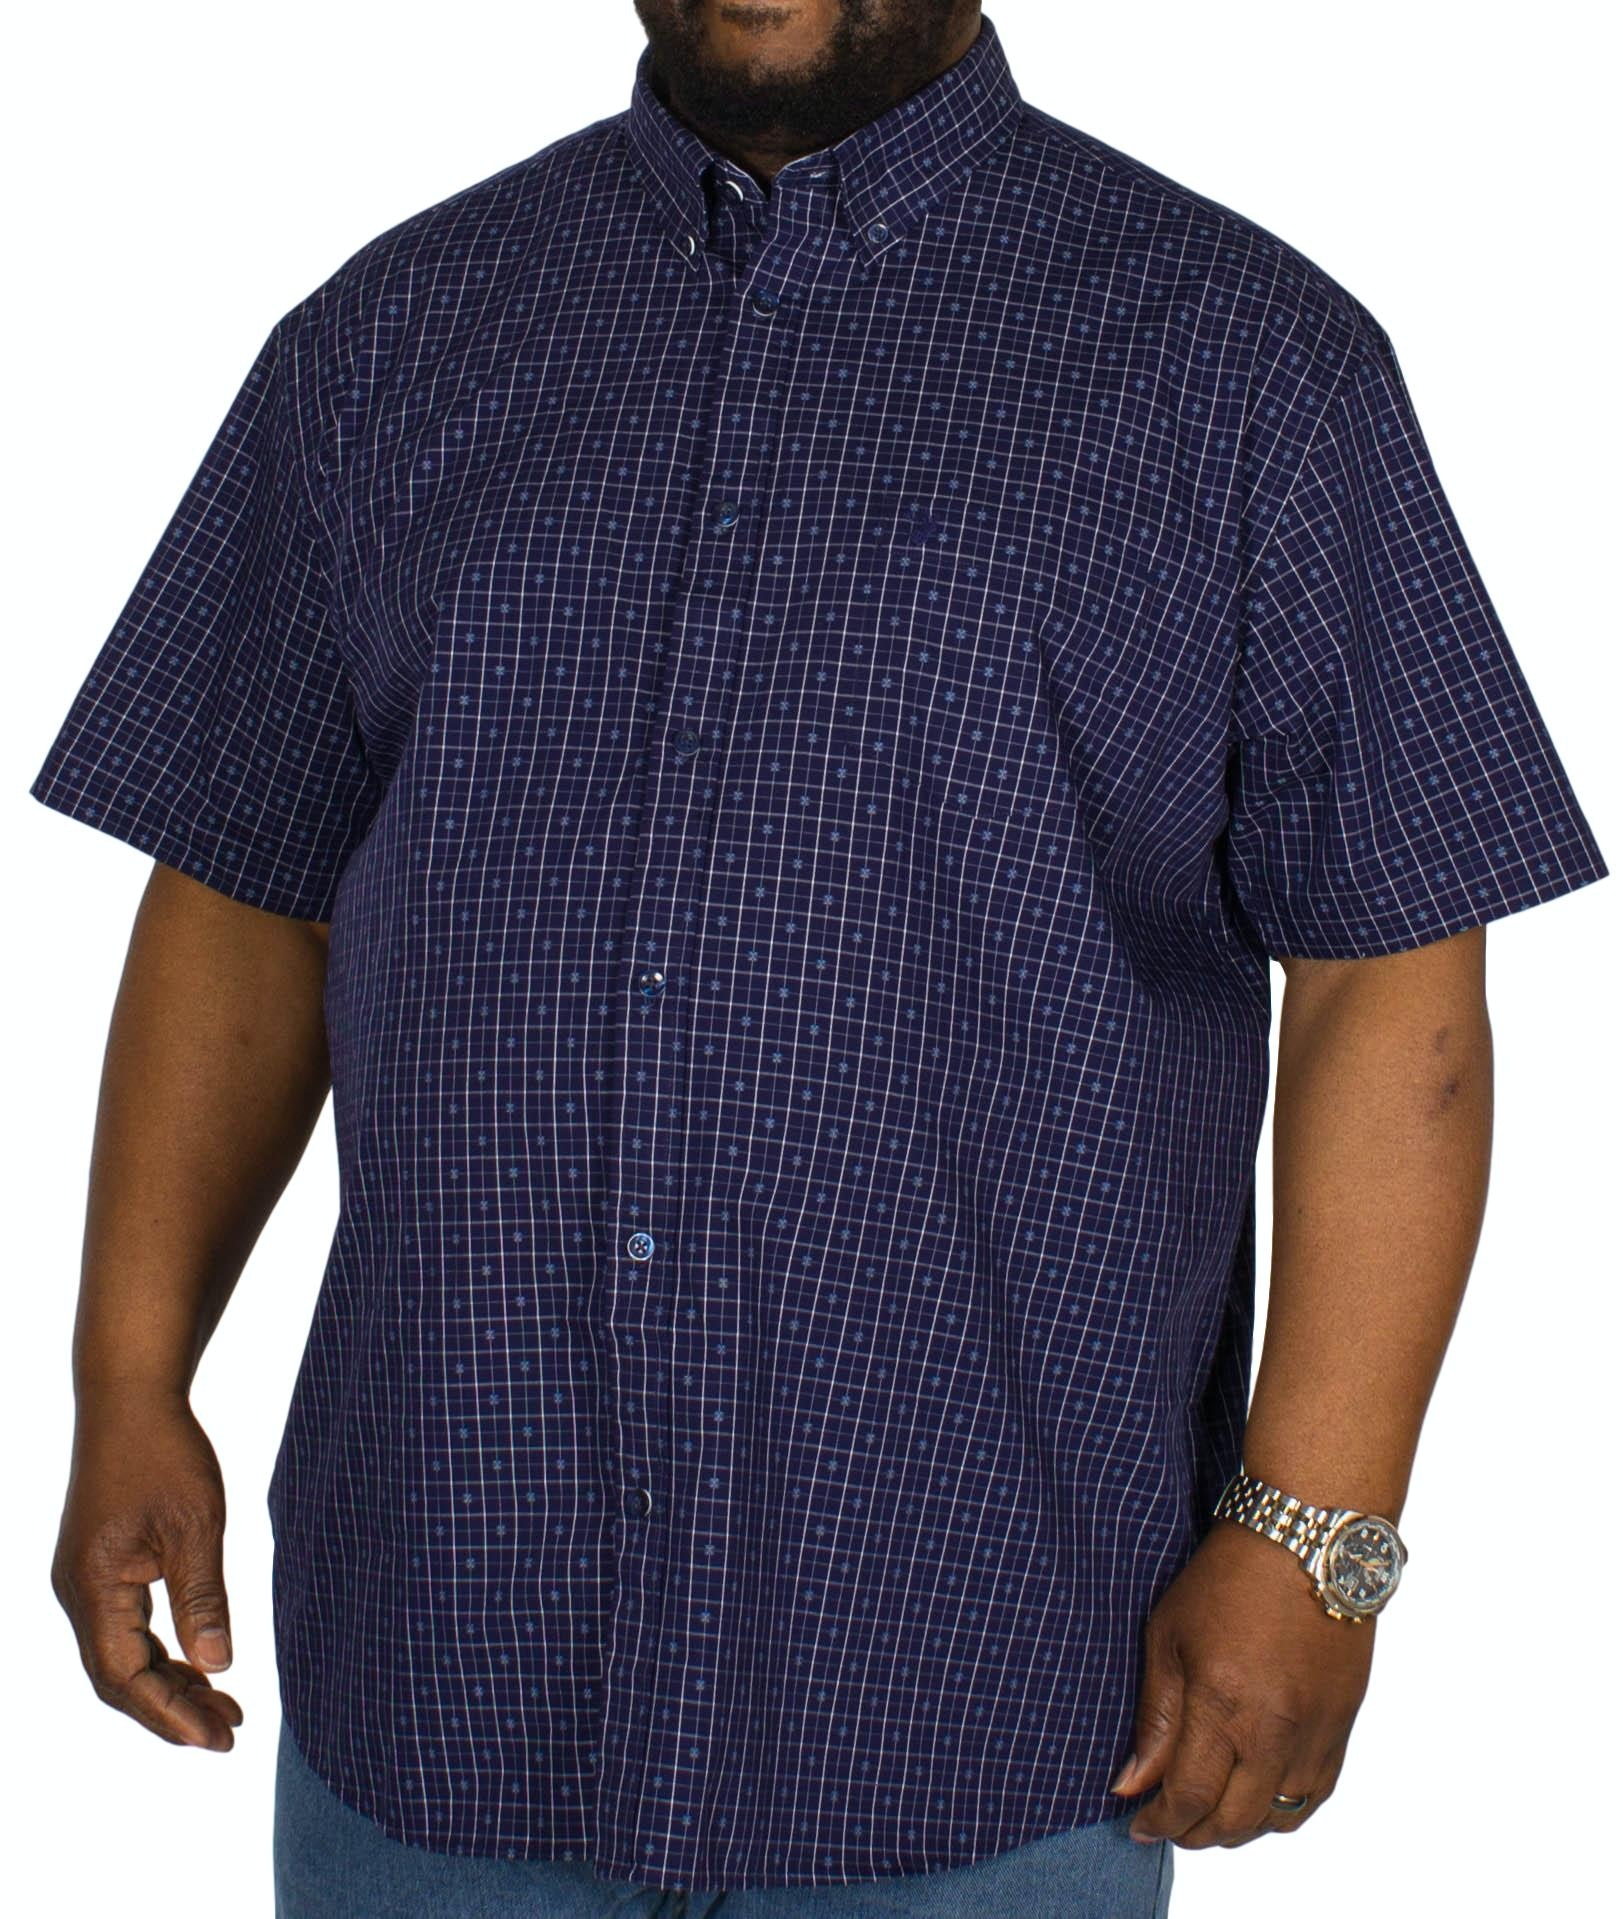 KAM Check/Dobby Short Sleeve Shirt Blue